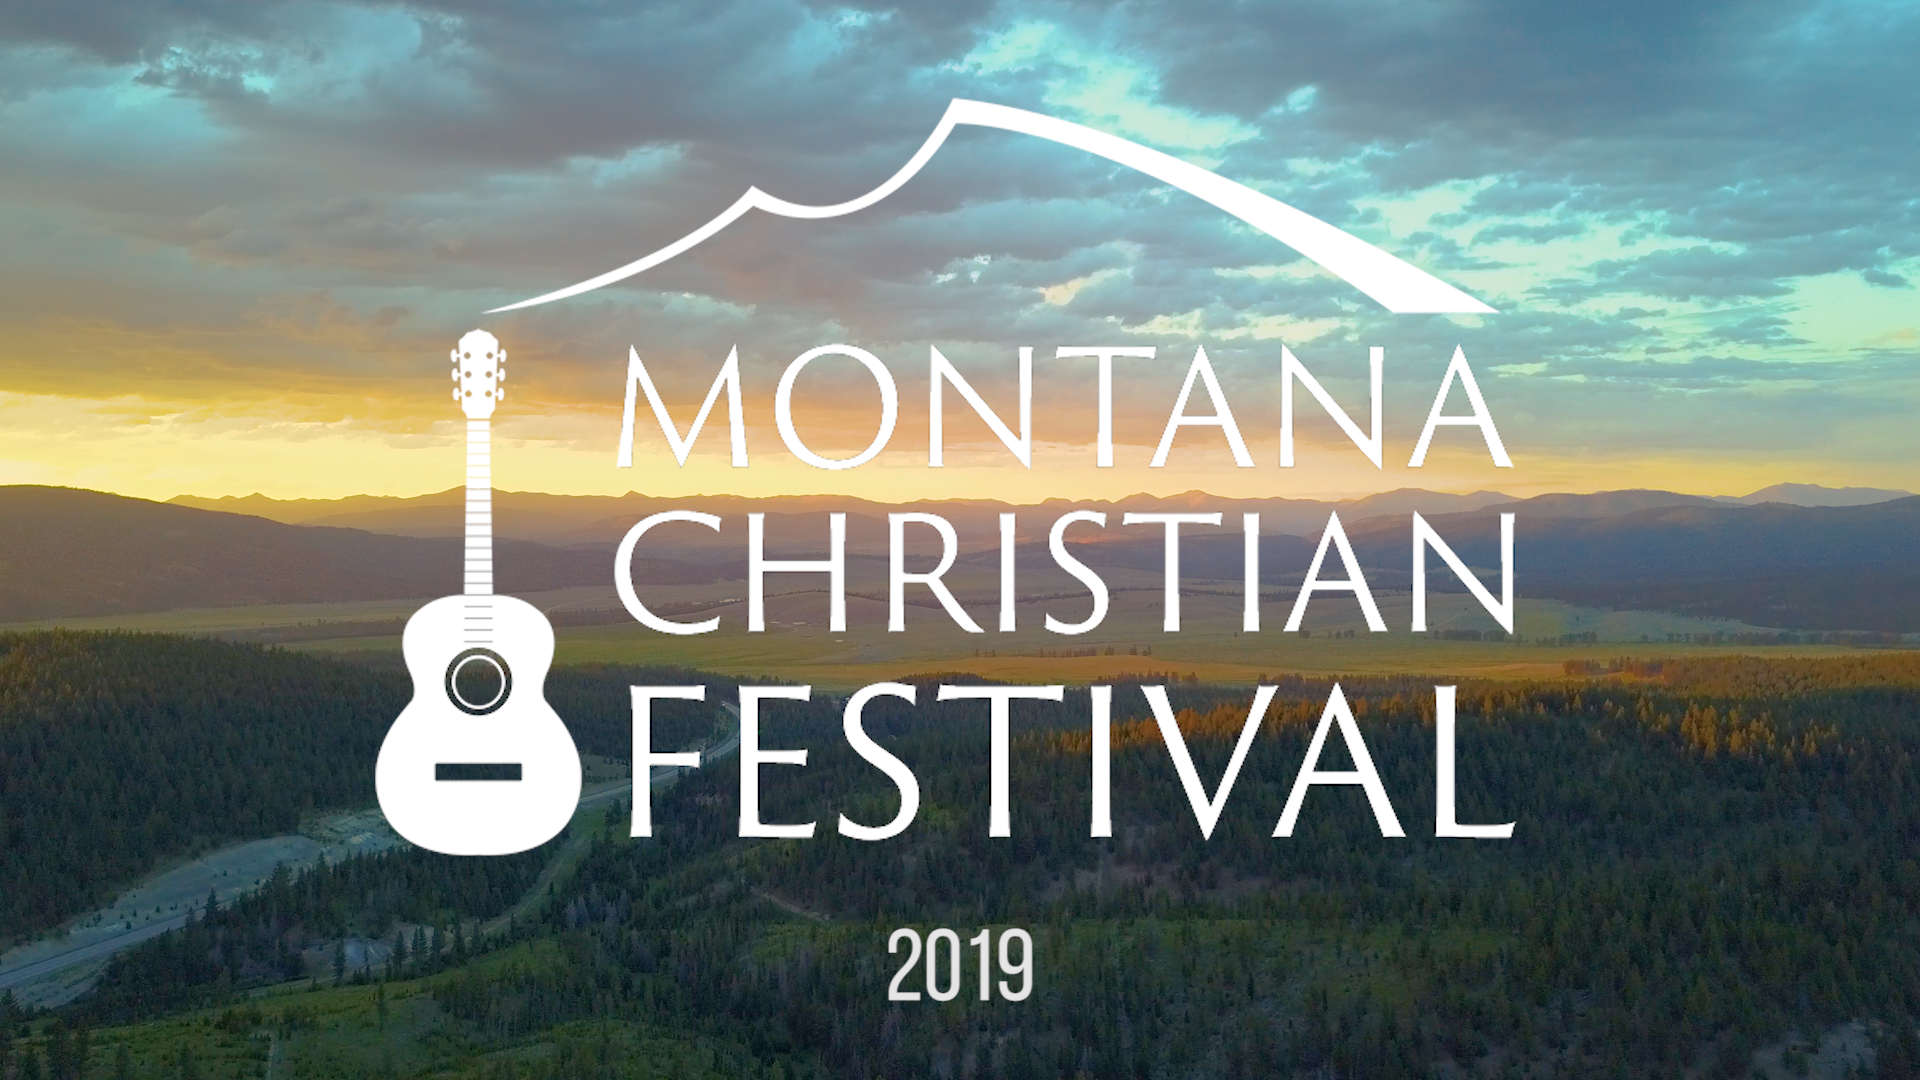 Montana Christian Festival Video Series